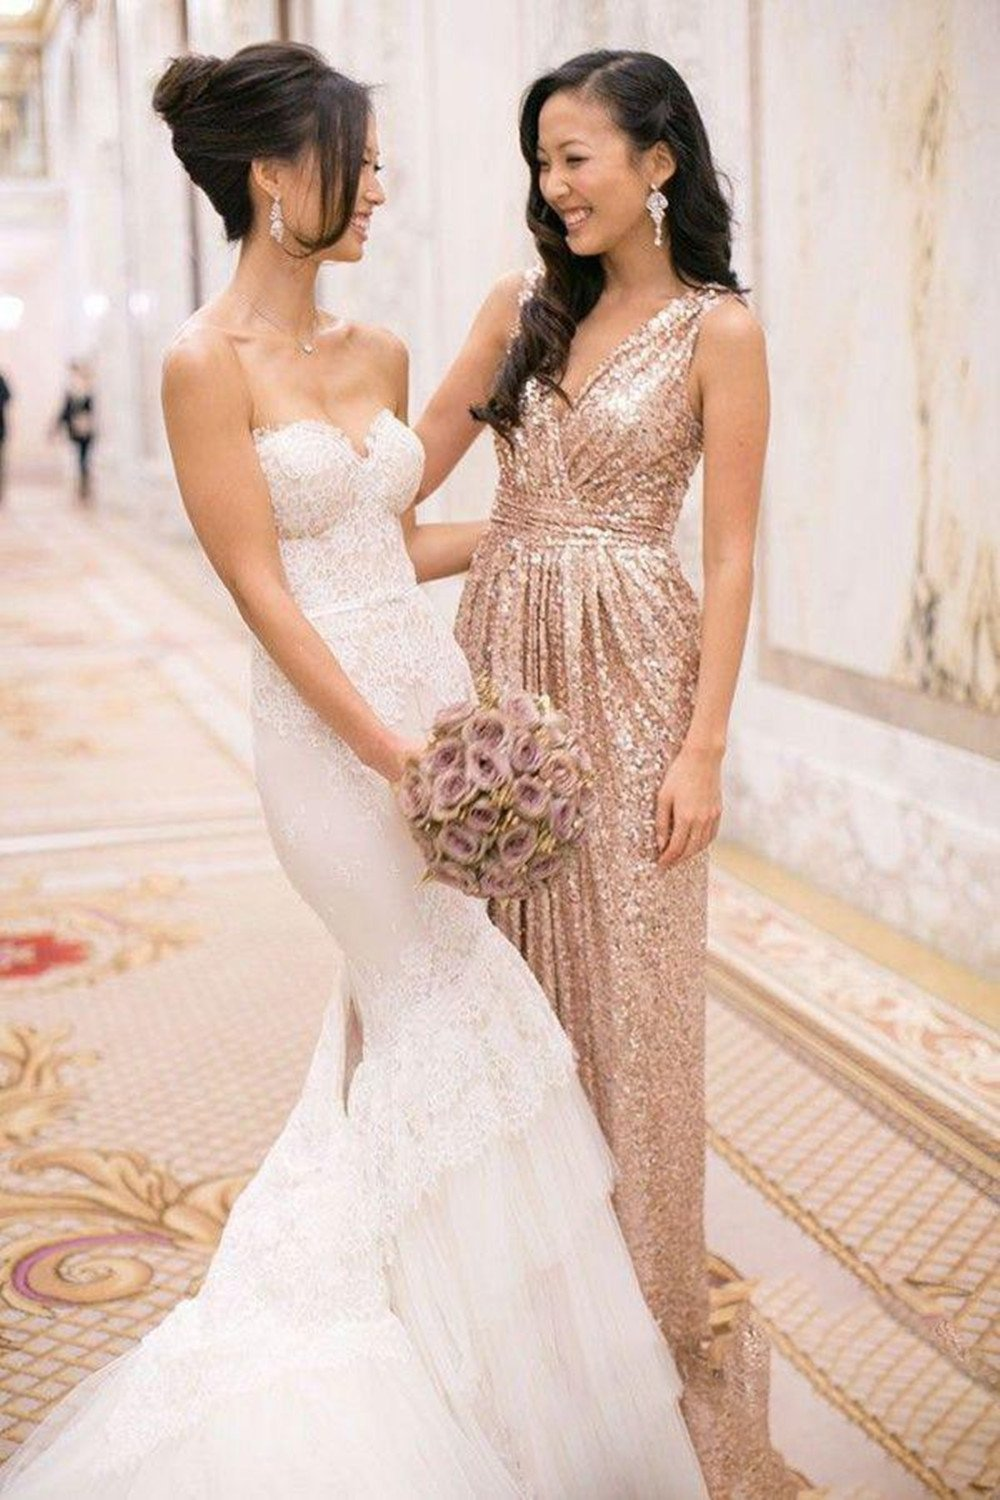 Shimmery gold wedding dresses for plus size dress images shimmery gold wedding dresses for plus size ombrellifo Images